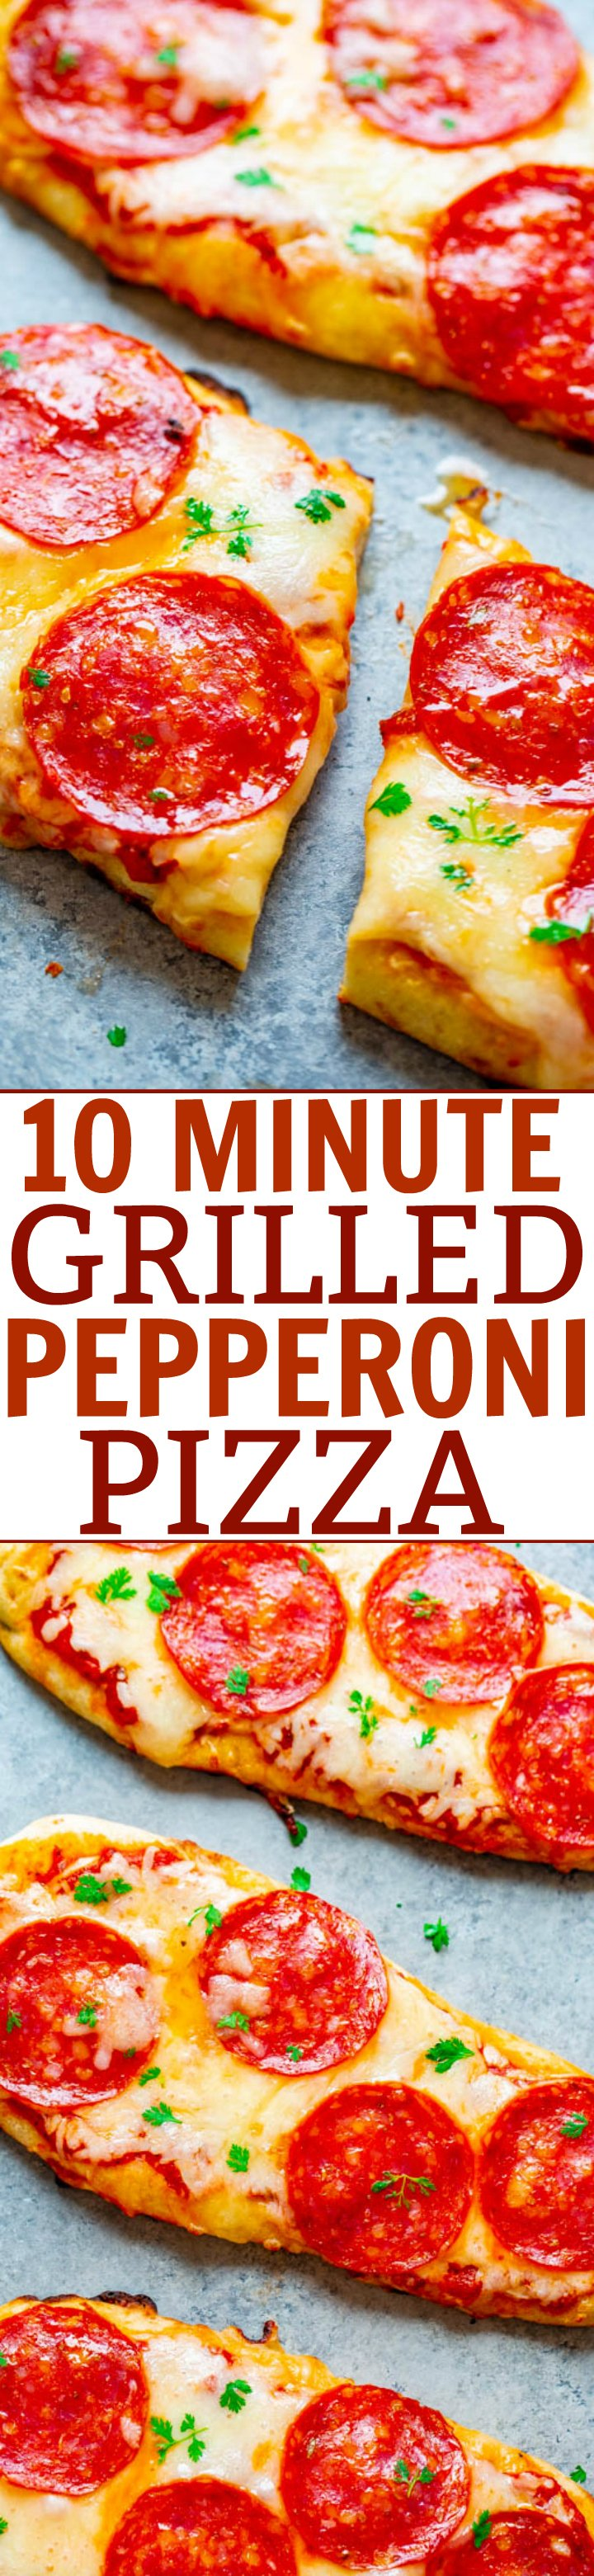 10-Minute Grilled Pepperoni Pizza - The EASIEST and FASTEST pizza you will ever make!! If you've never tried making pizza on the grill, you need to try it! It's foolproof, delicious, faster than calling for delivery, and pizza is always a WINNER!!